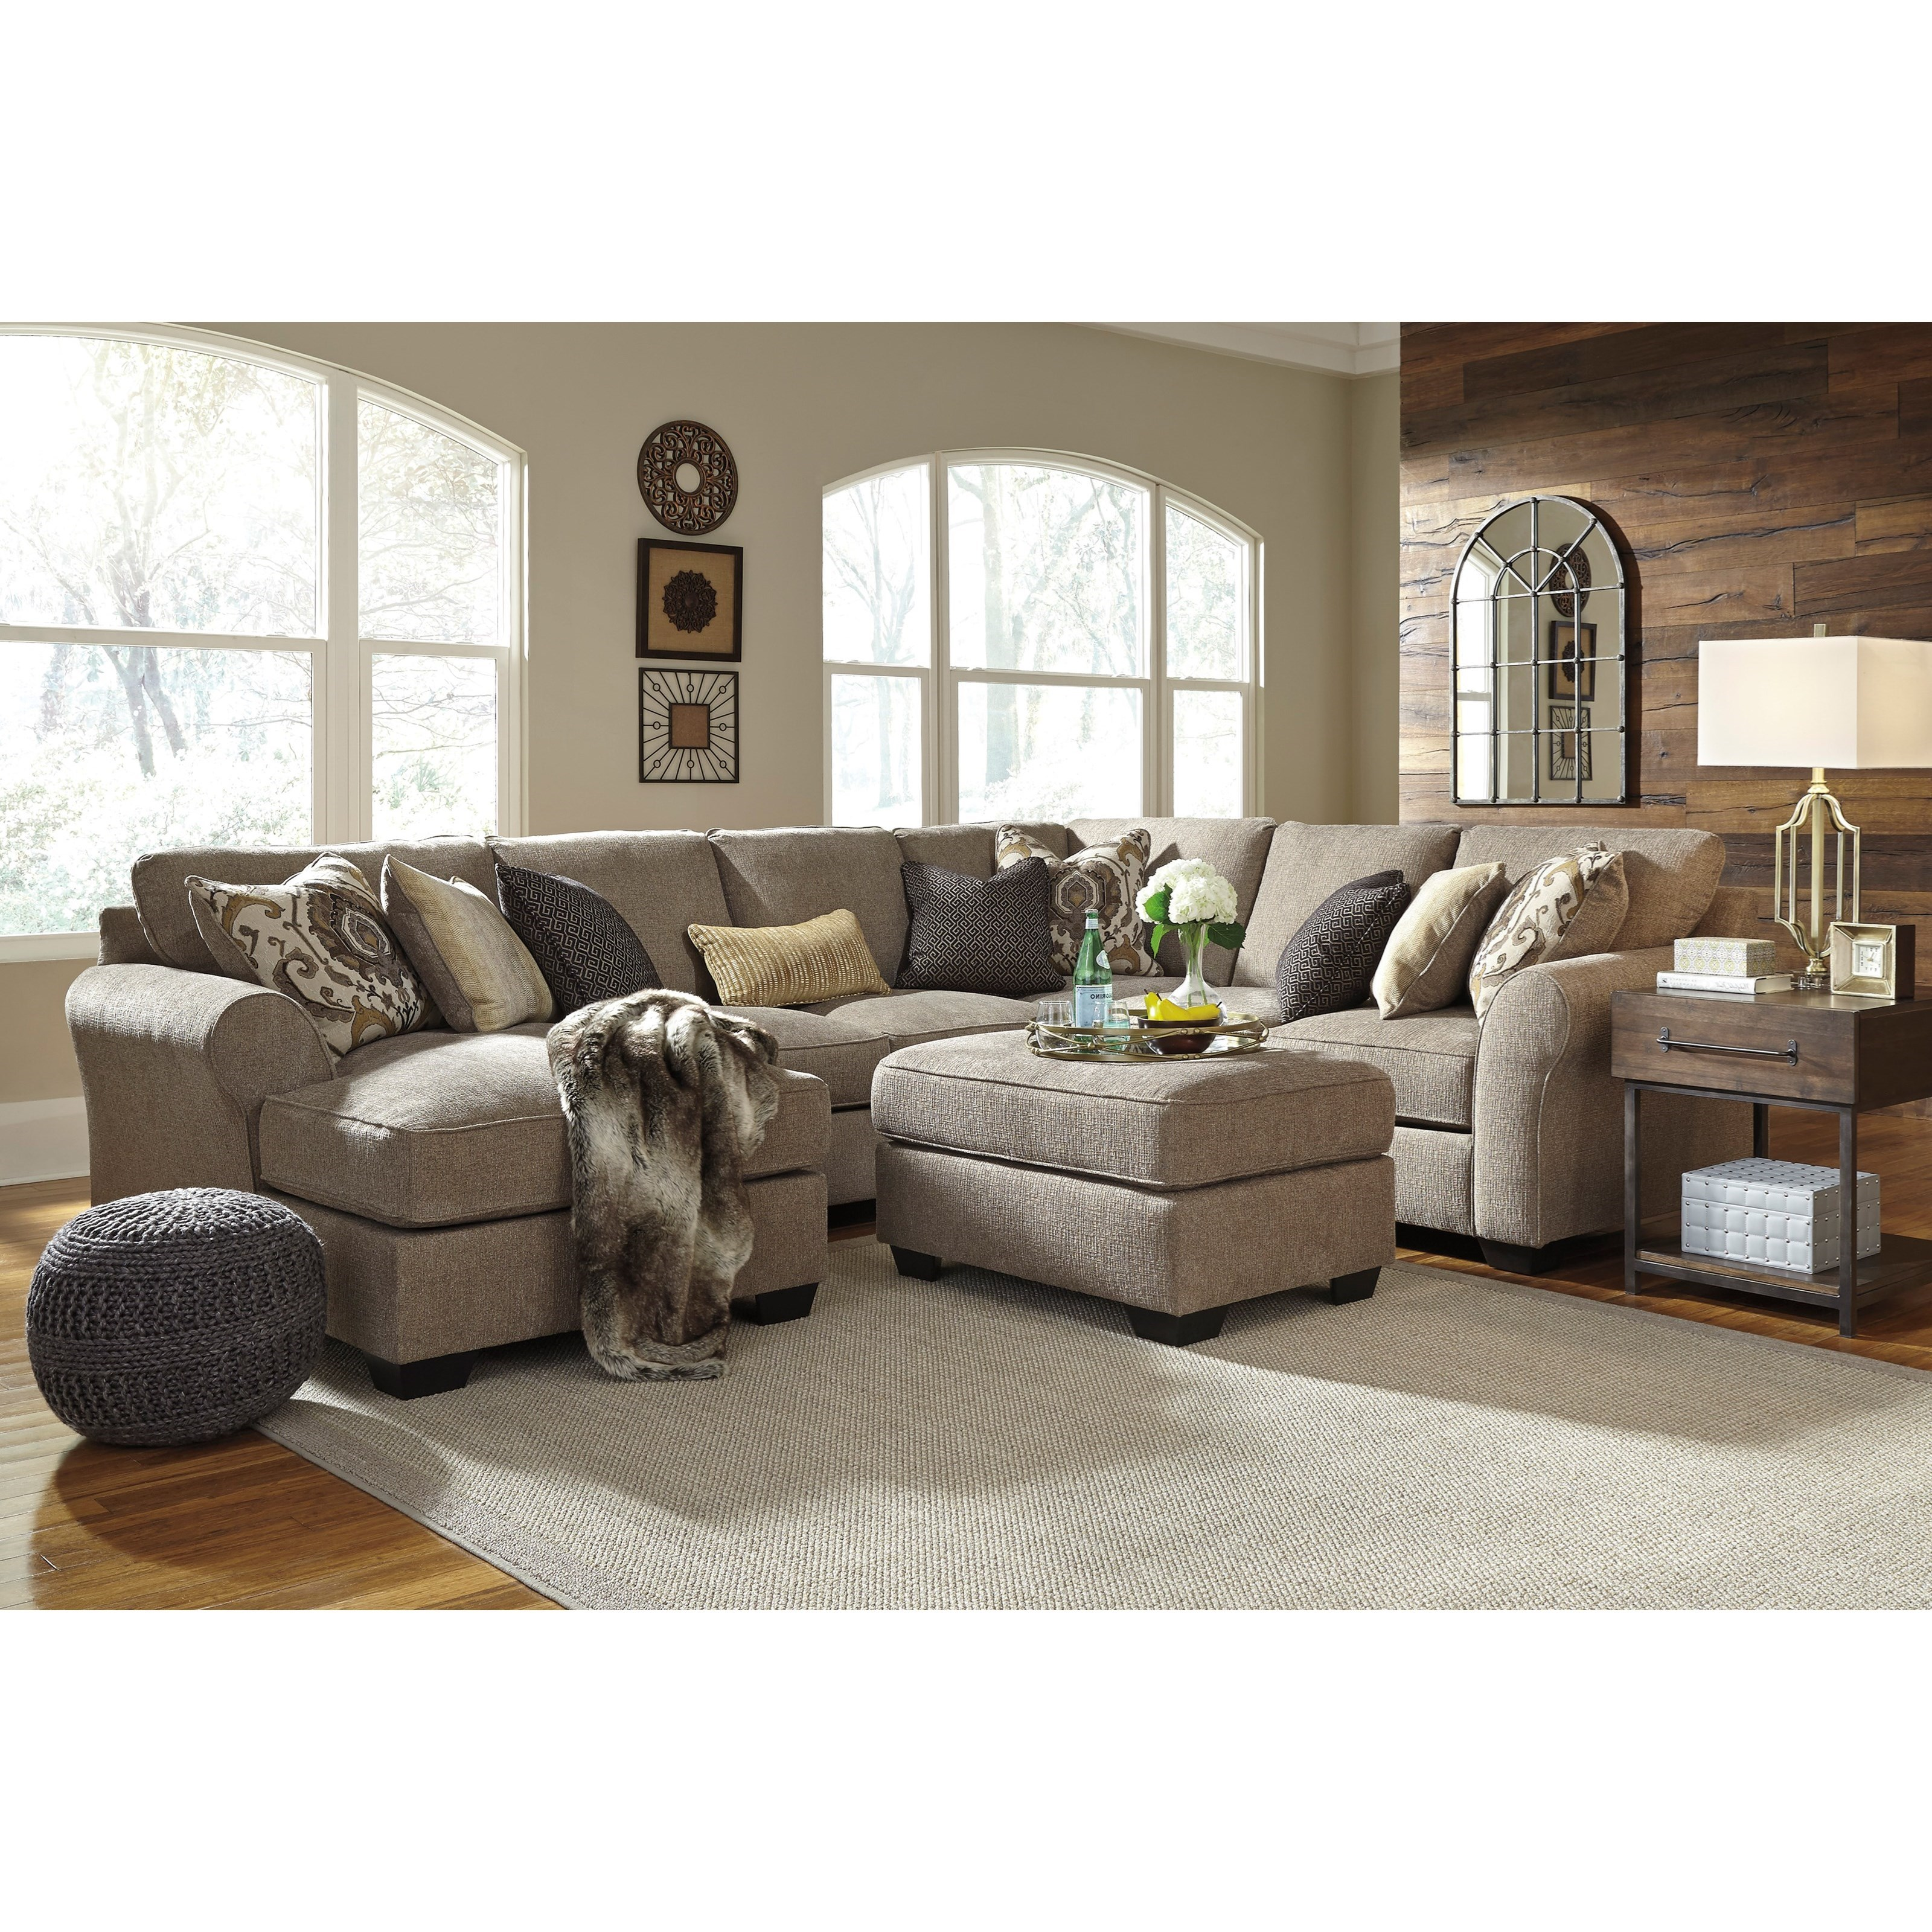 Stationary living room group miskelly furniture upholstery group